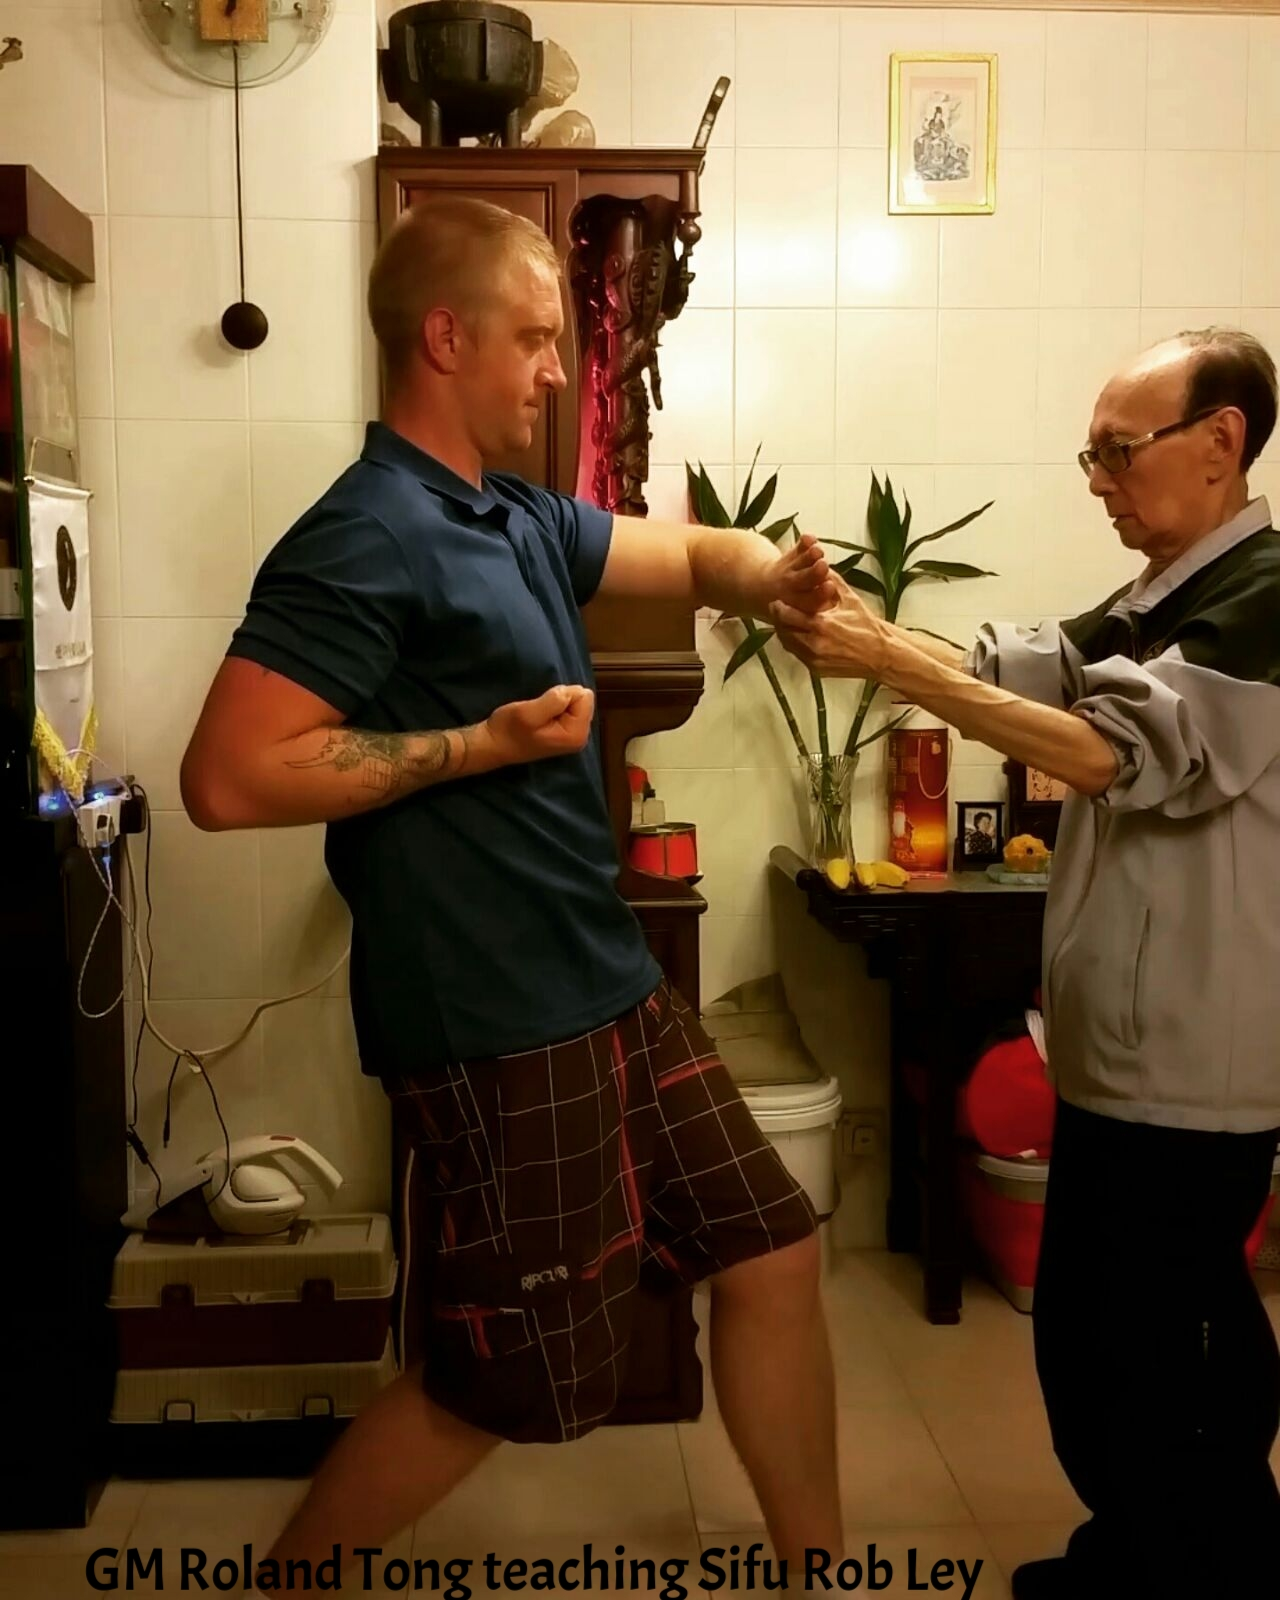 Robert Ley during some training with his Sifu GM Roland Tong